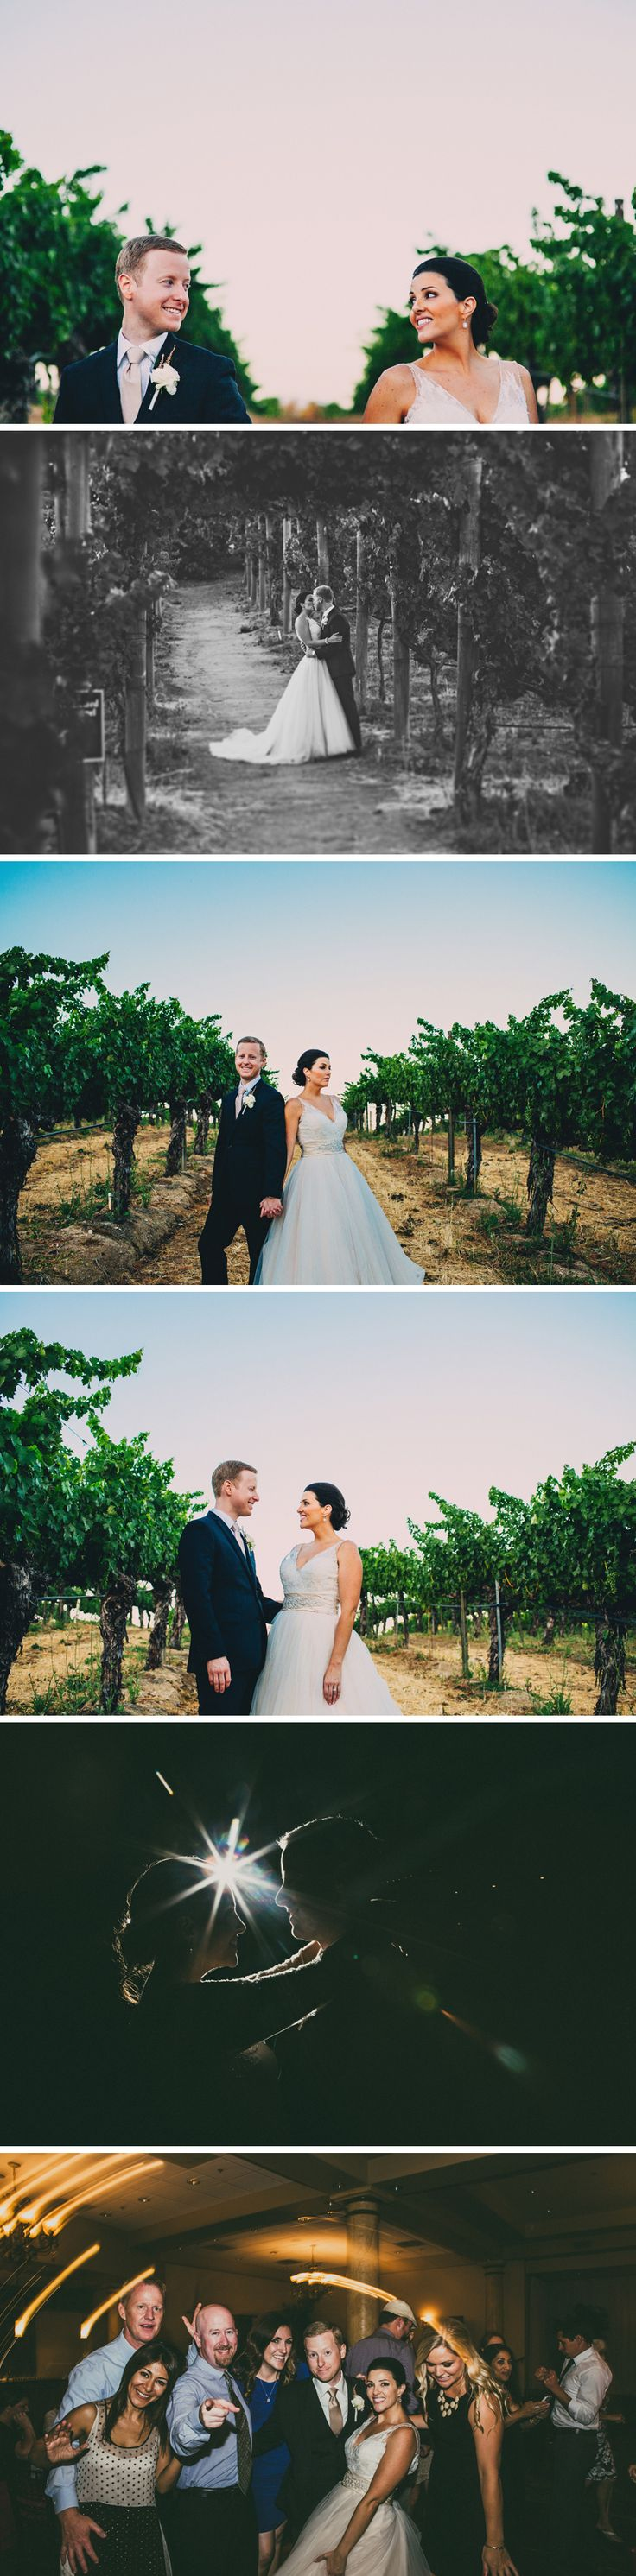 Temecula Wilson Creek Winery Wedding   Rock This Moment Photography. I love the black and white picture in the vineyards!